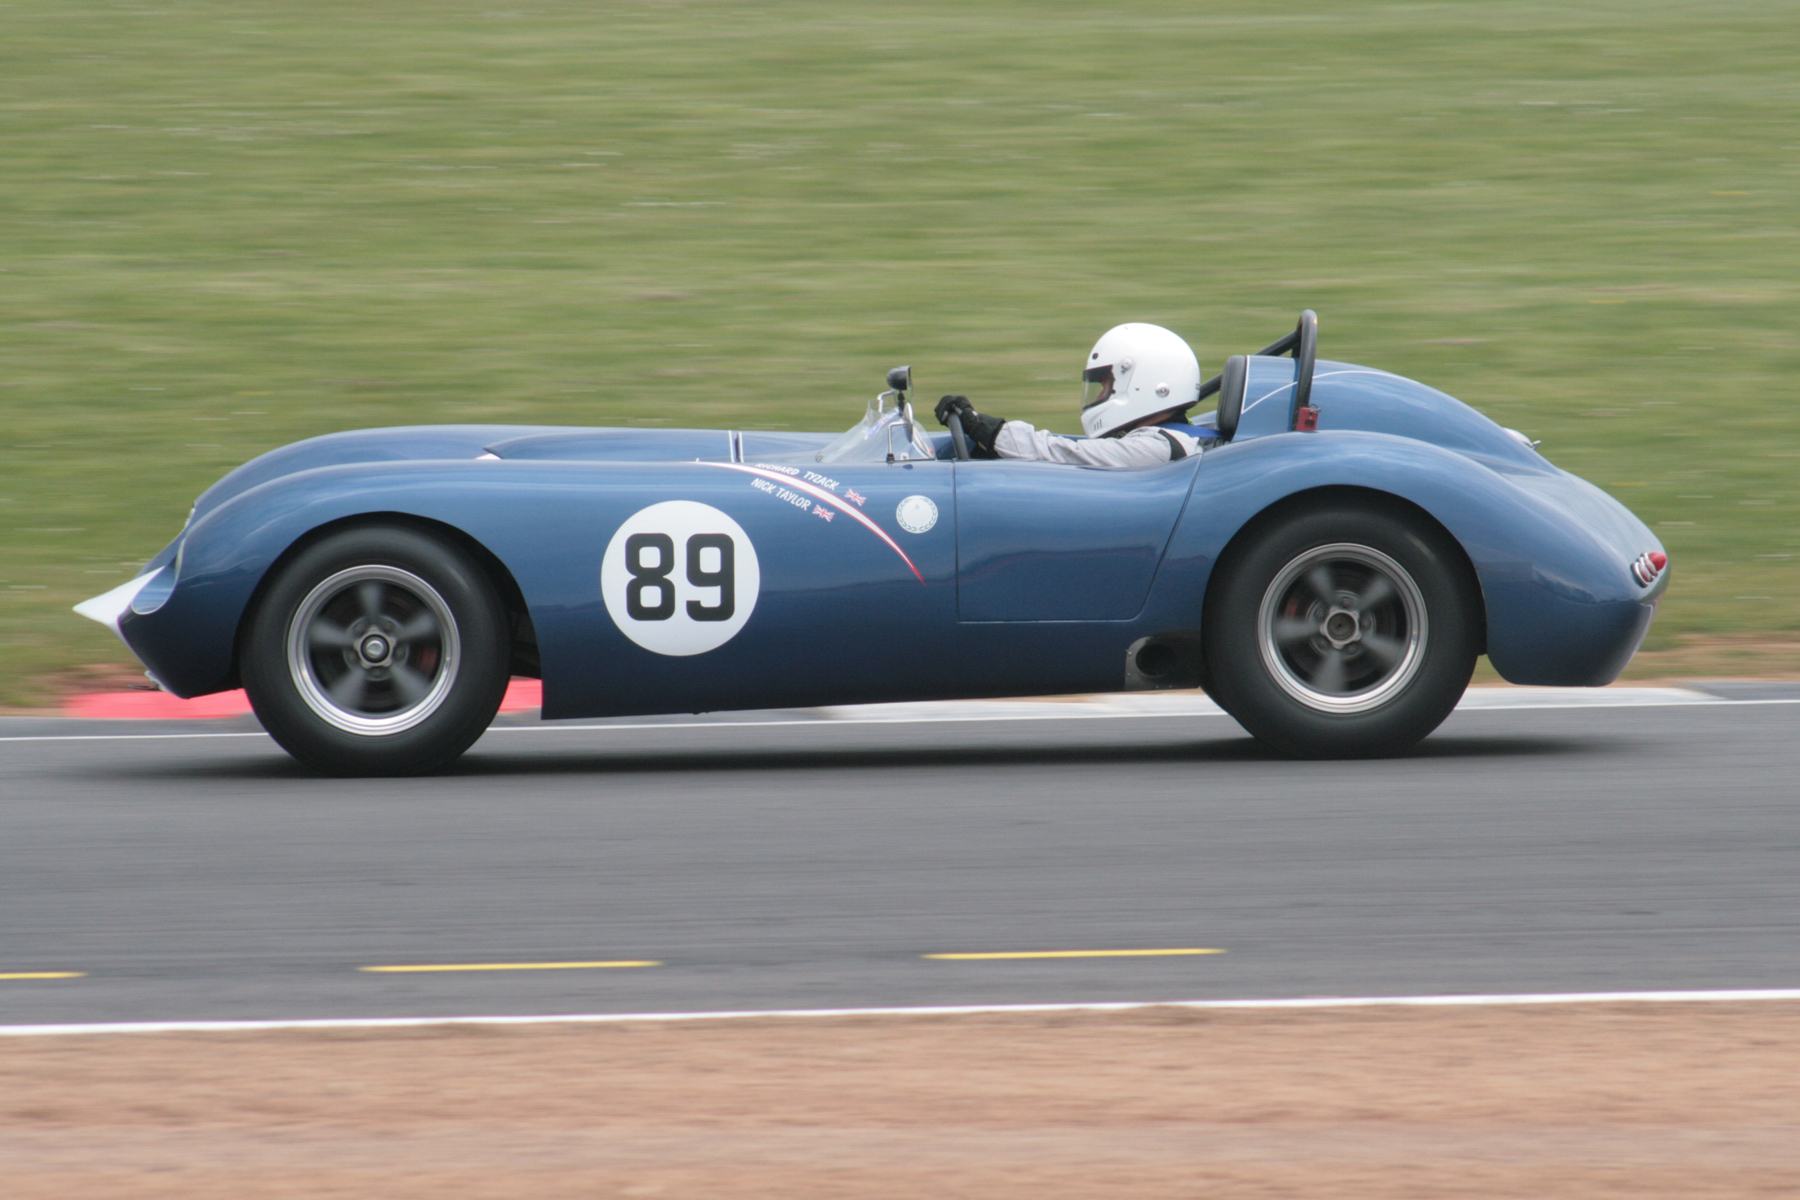 Richard Tyzack in the Kellison J4R. Photo - John Turner